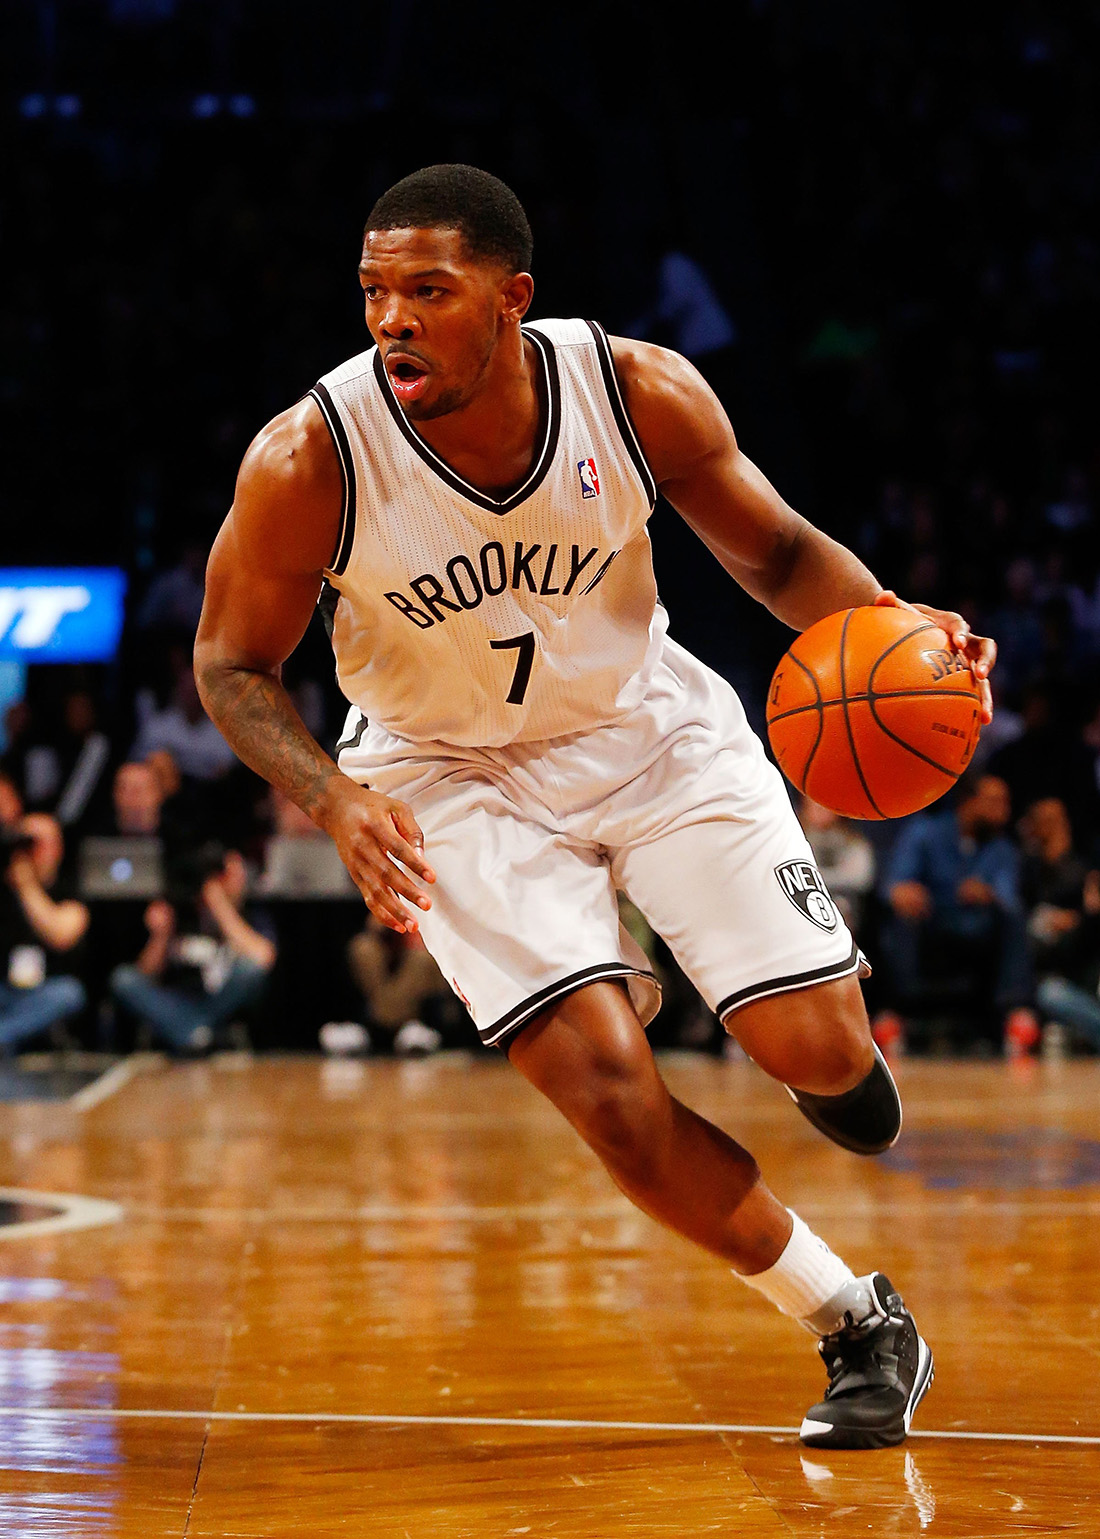 Joe Johnson en viva basquet